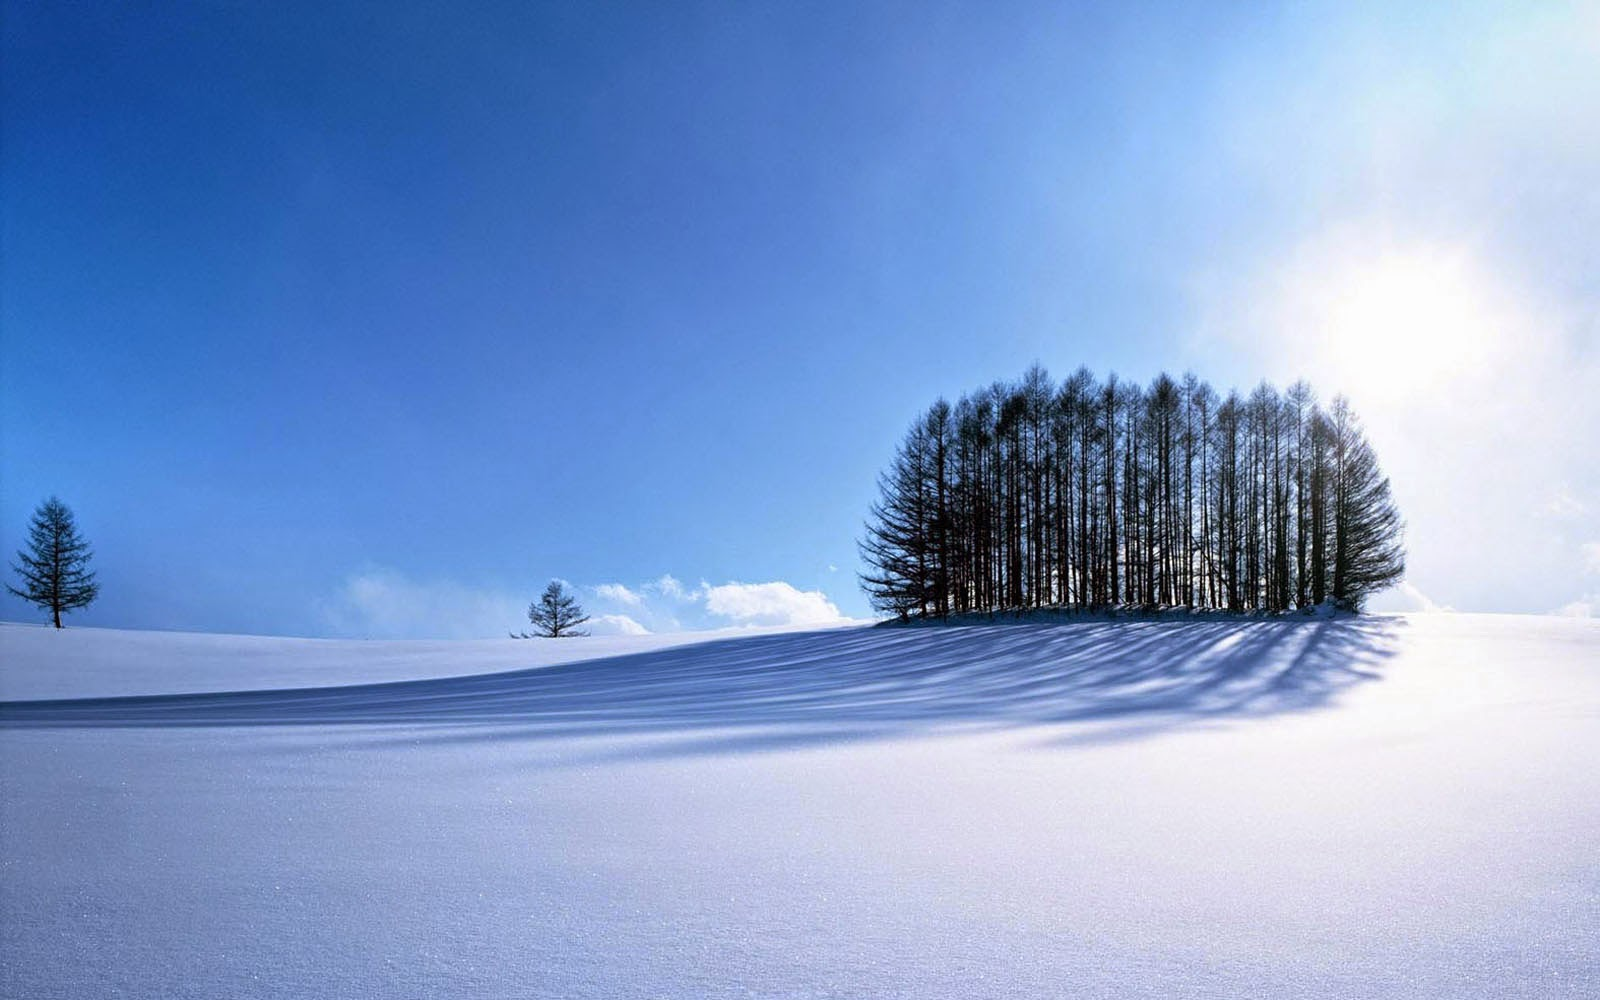 tag beautiful winter scenery wallpapers backgrounds photos images and 1600x1000